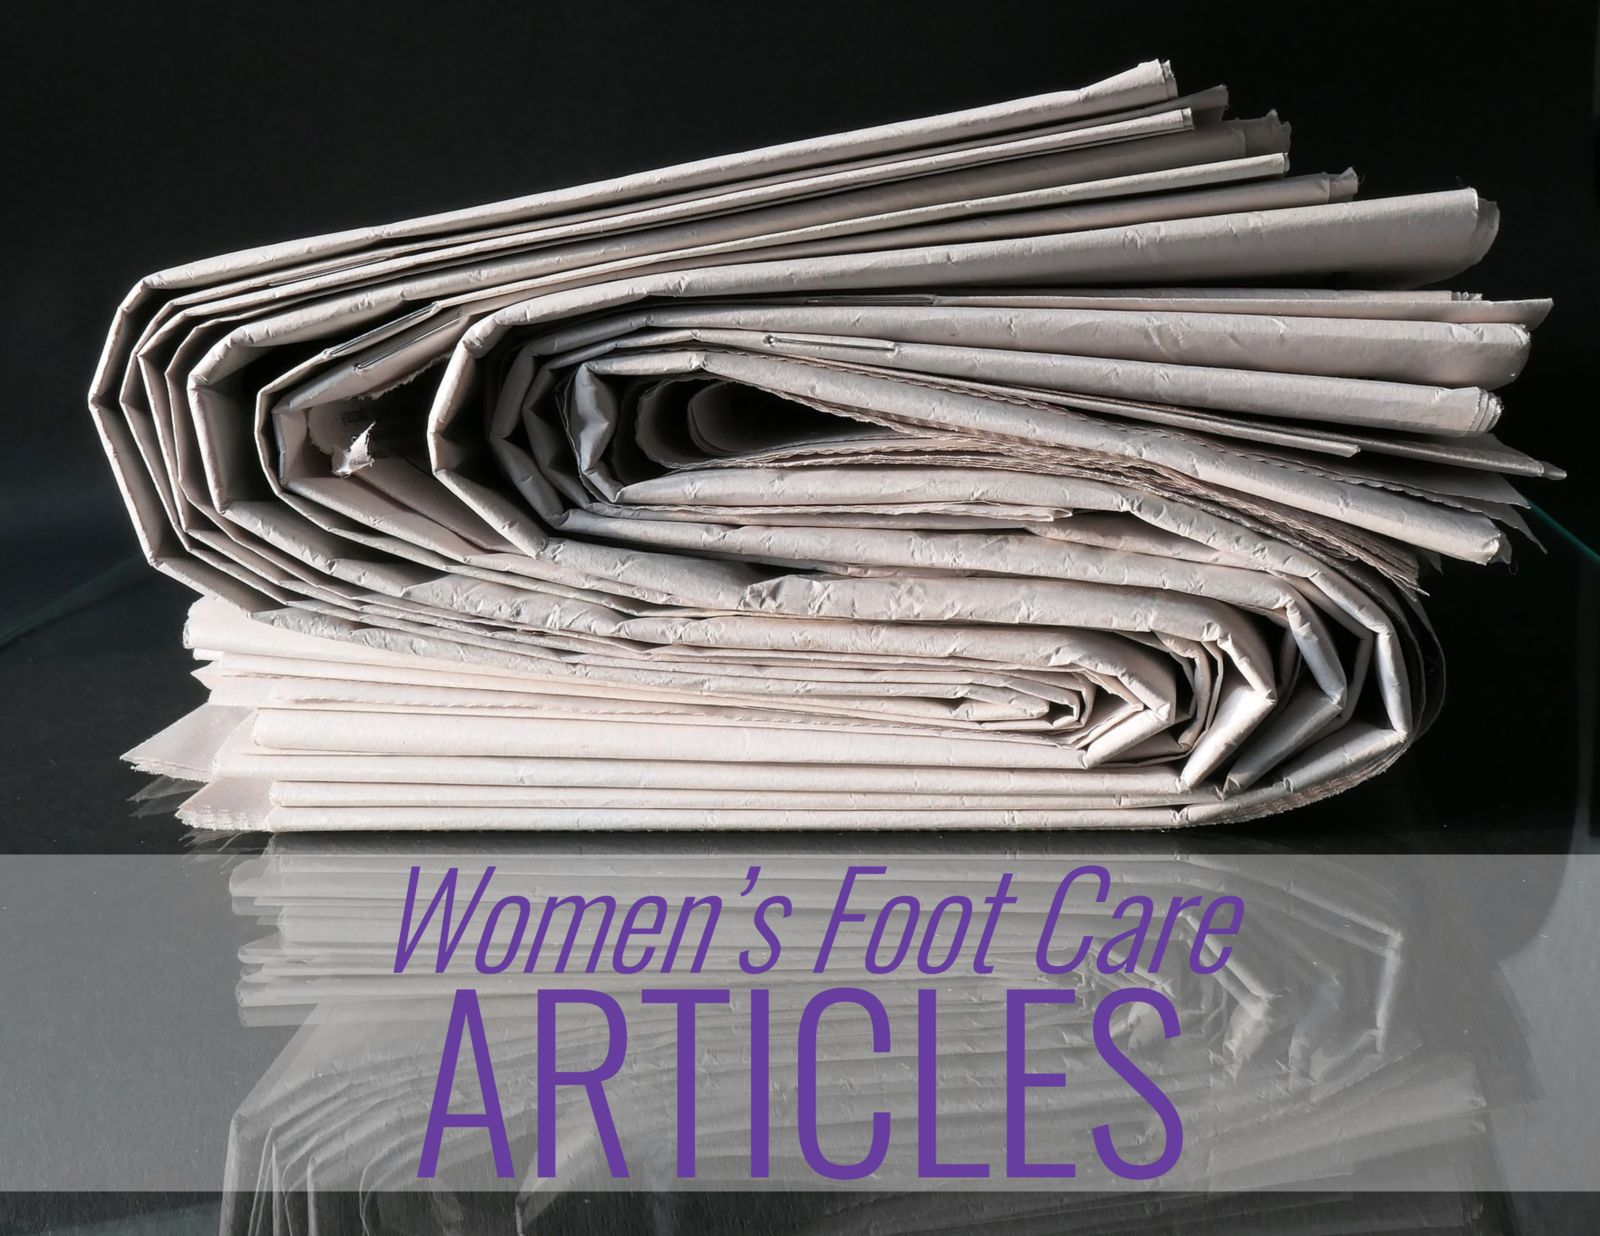 newspapers with the words women's foot care articles